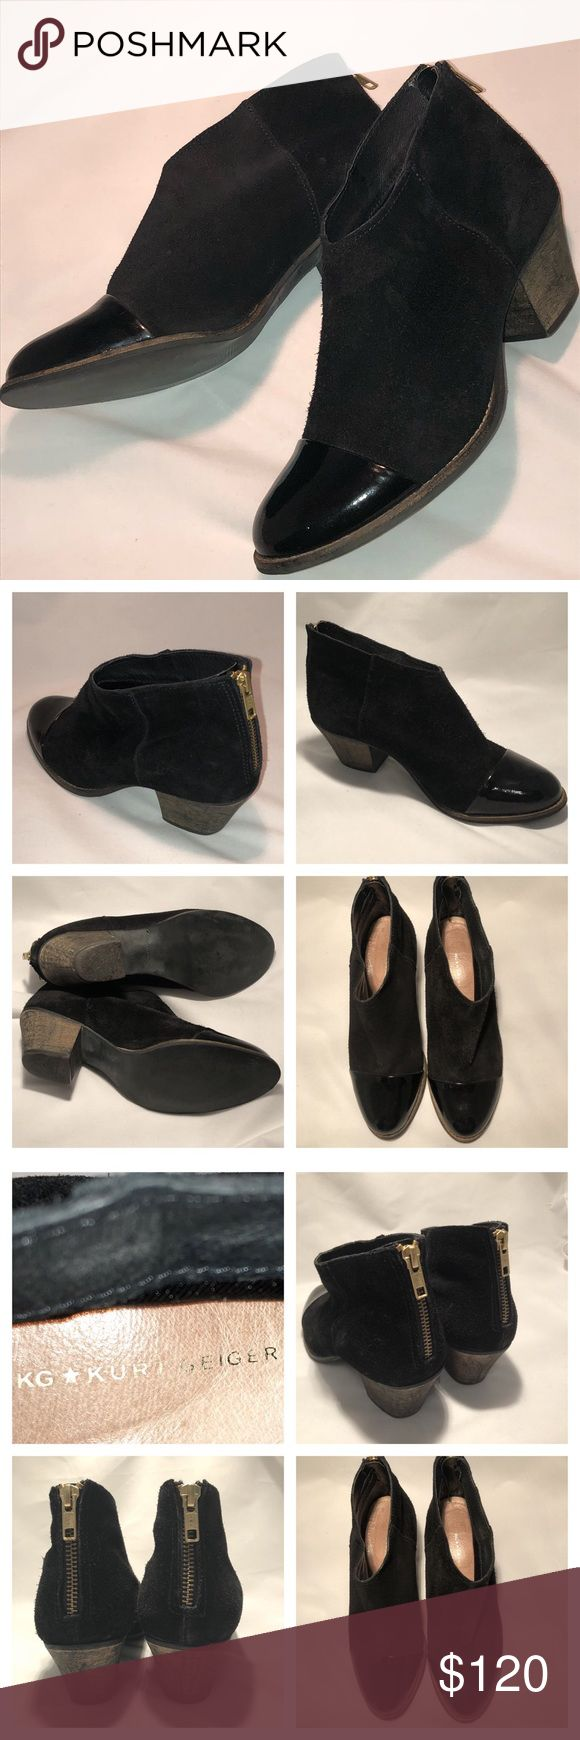 Kurt Geiger Suede & Patent Leather Cap Toe Boot 39 Kurt Geiger Suede & Patent Leather Cap Toe Boot size 39. This bootie fits a size 8 best. Gorgeous black suede & Patent leather toe. Made in Portugal. Nice to dress up a pair of jeans or for work. kurt geiger Shoes Ankle Boots & Booties